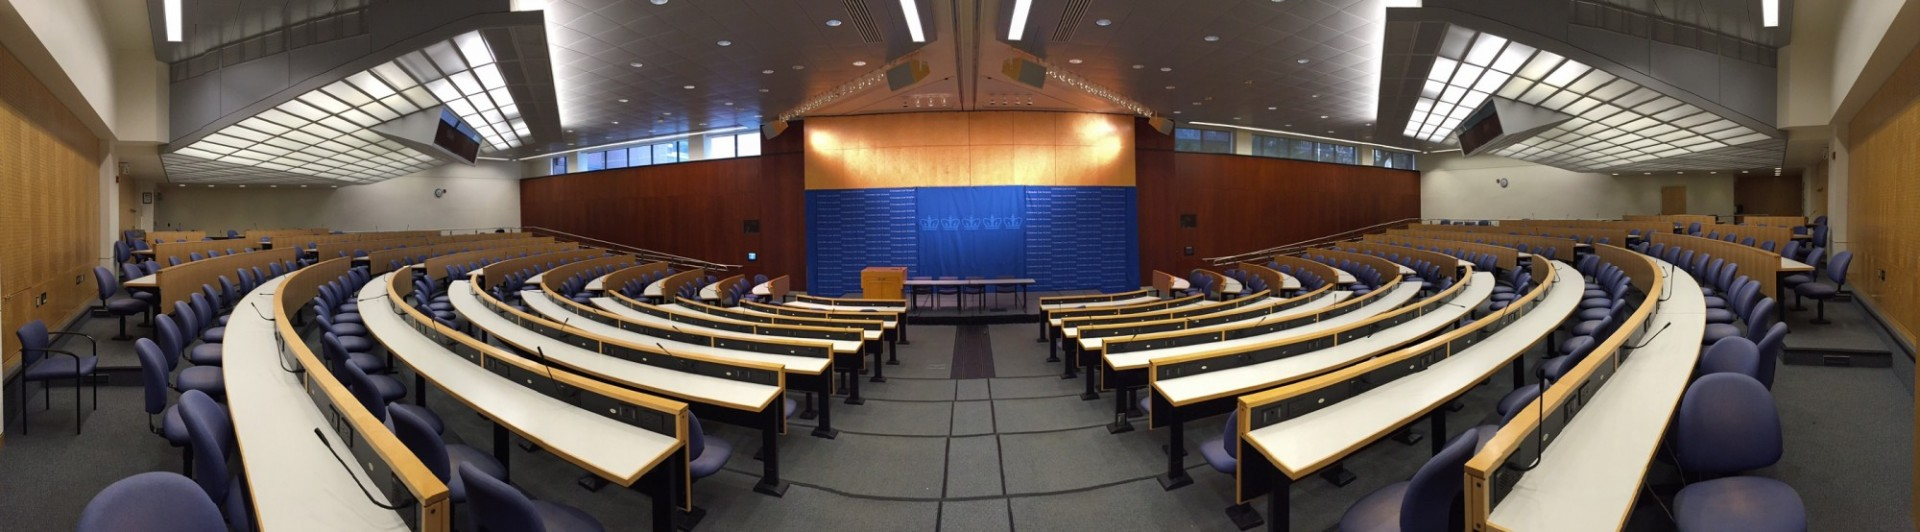 Picture of Jerome Greene Hall Classroom 104 106